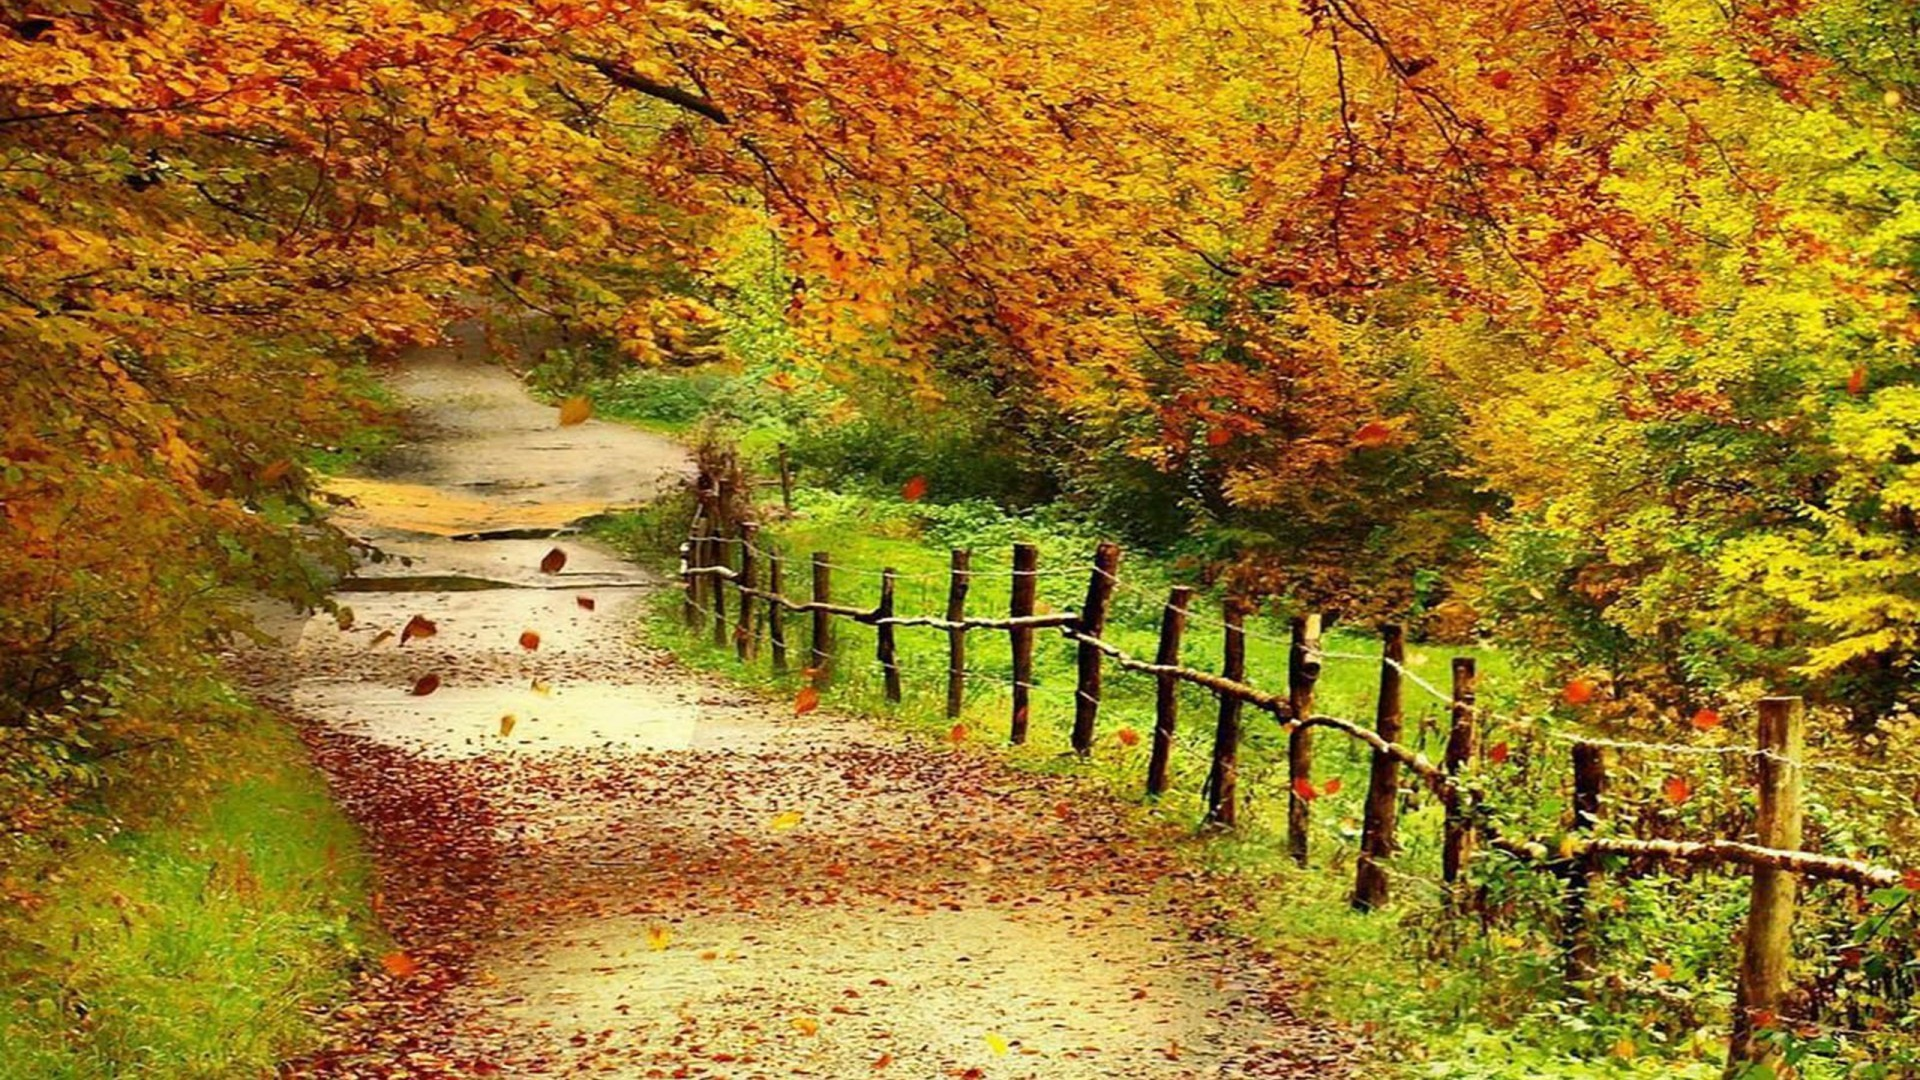 Free Download Wallpaper: Autumn Scenery Wallpaper (57+ Images